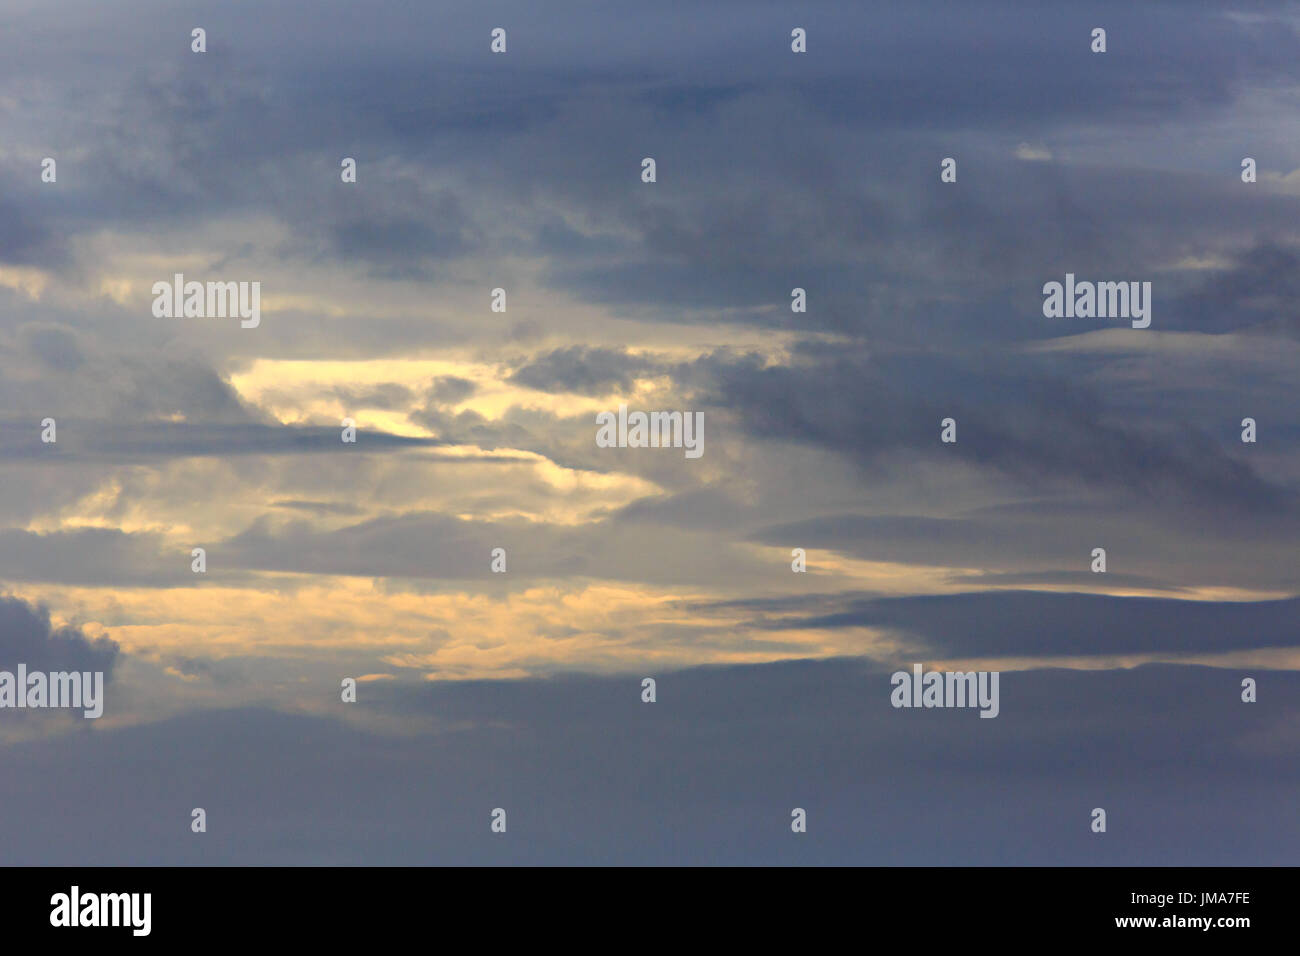 dark clouds with spots of late afternoon sunlight, just before sundown - Stock Image